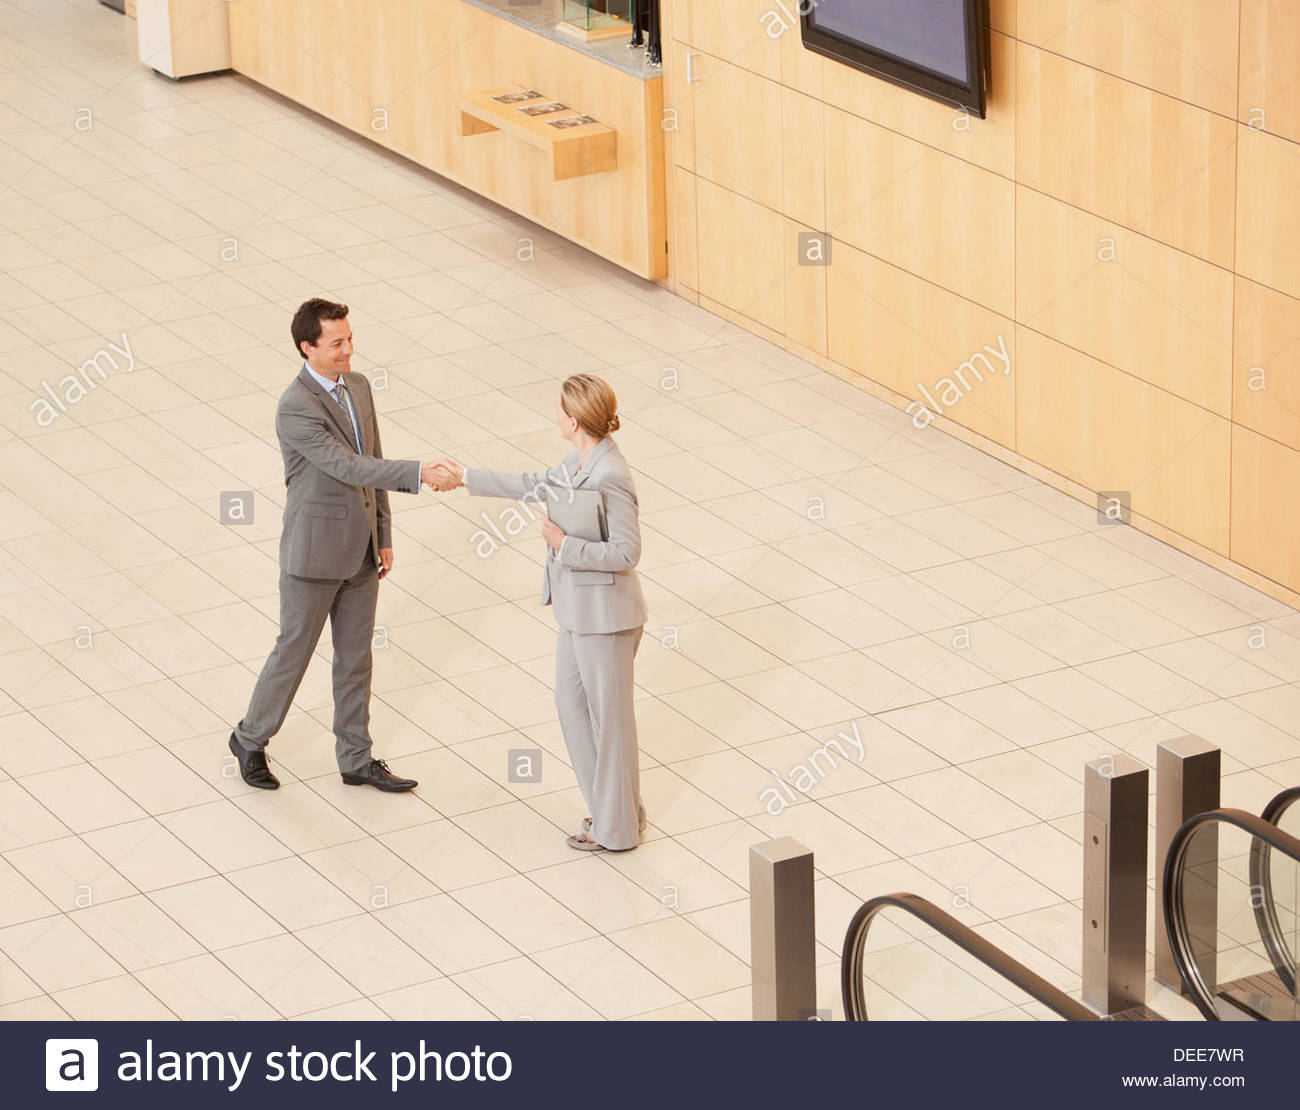 Business people standing at bottom of escalator - Stock Image